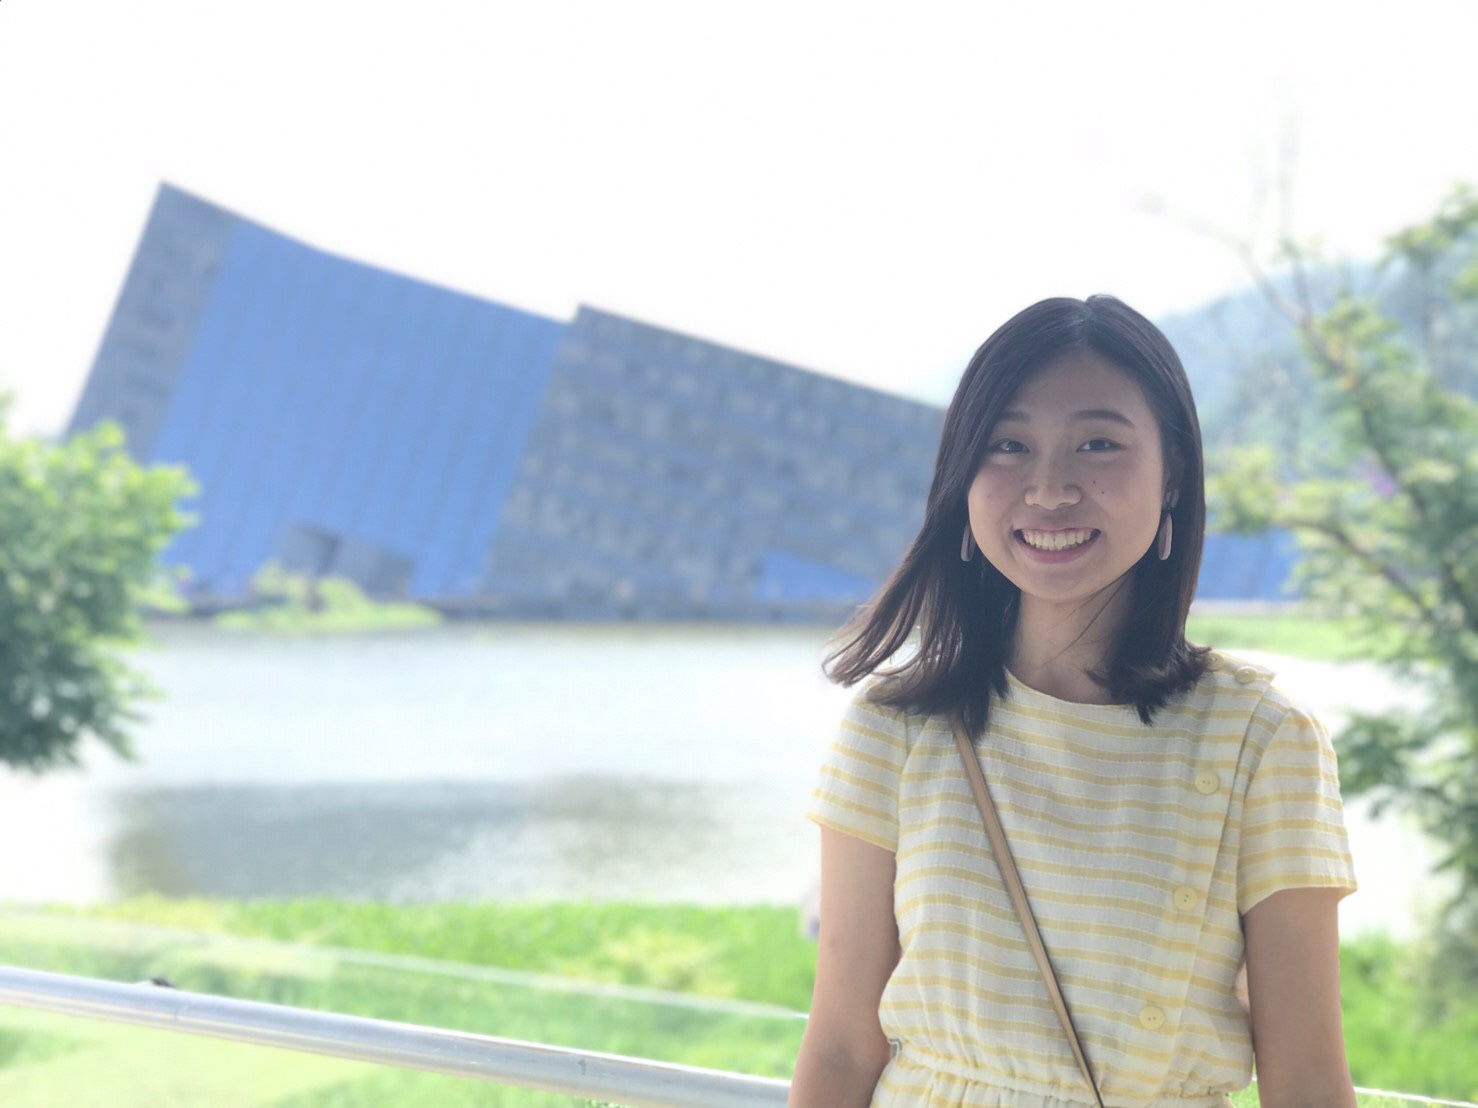 Teaching English and Living in Taiwan Tutors of Chinese Available  華語教師、華語家教, Yachinese/master degree image